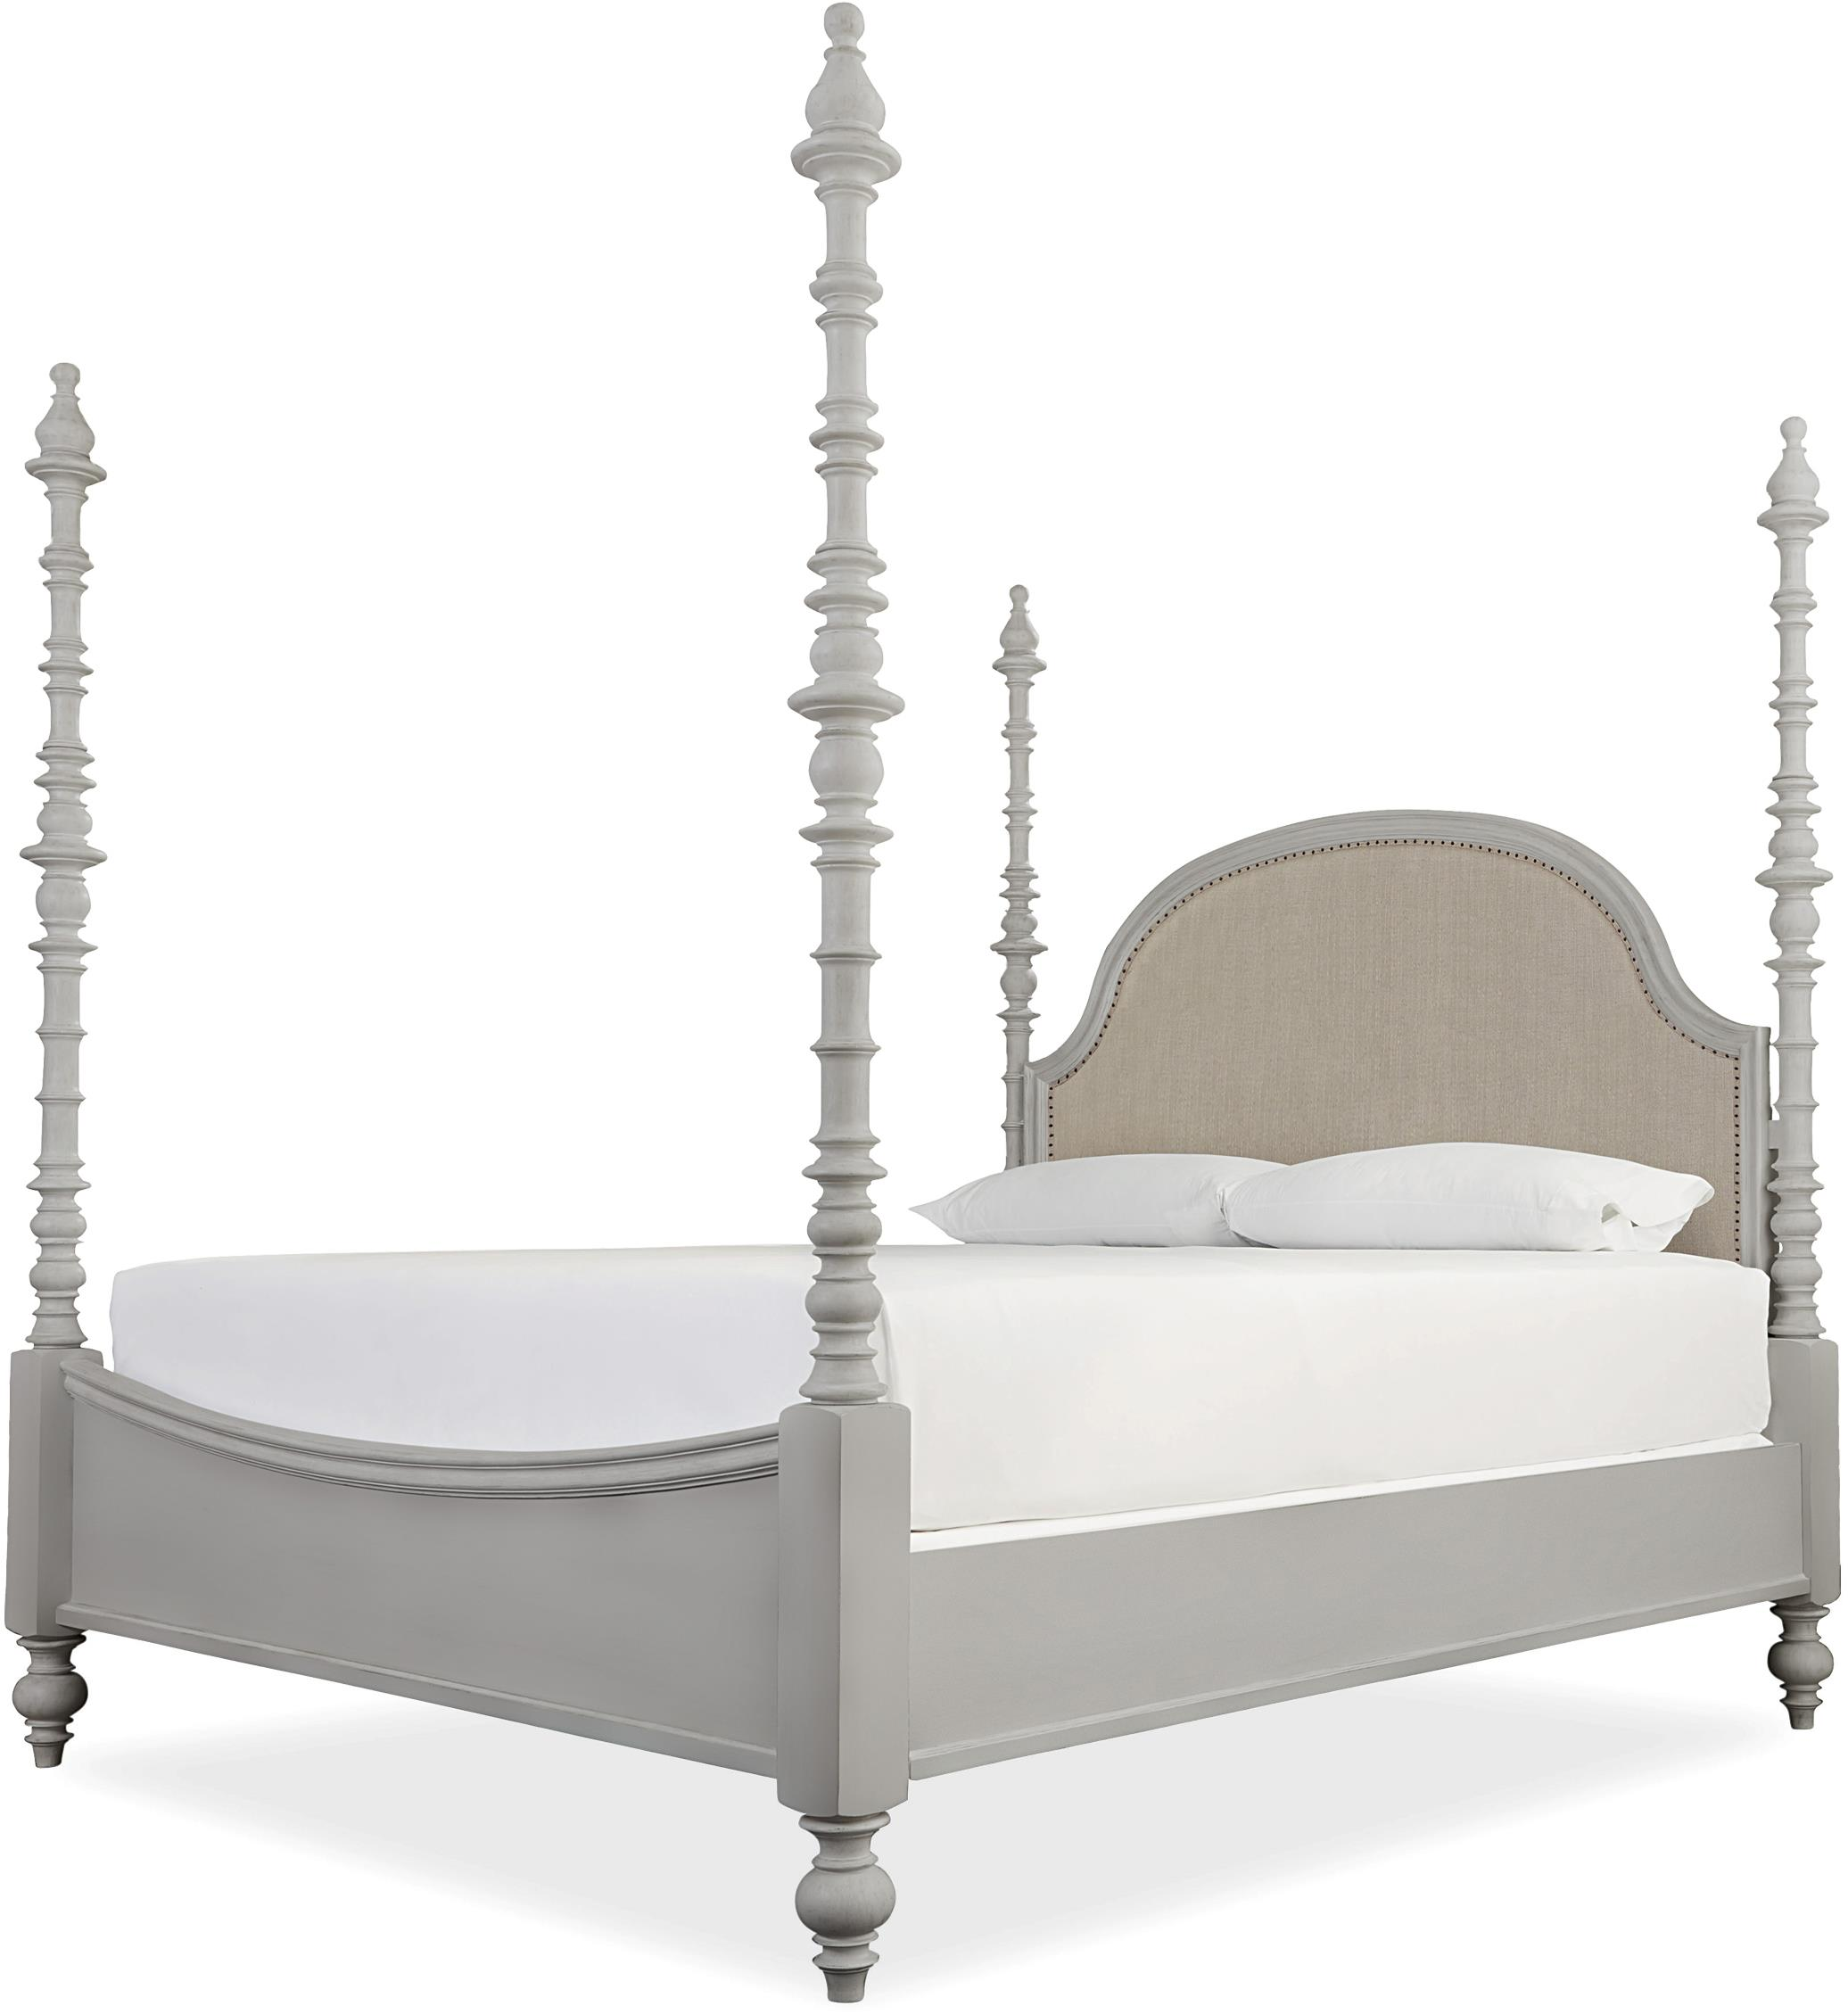 Paula Deen by Universal Dogwood The Dogwood King Bed - Item Number: 599290B